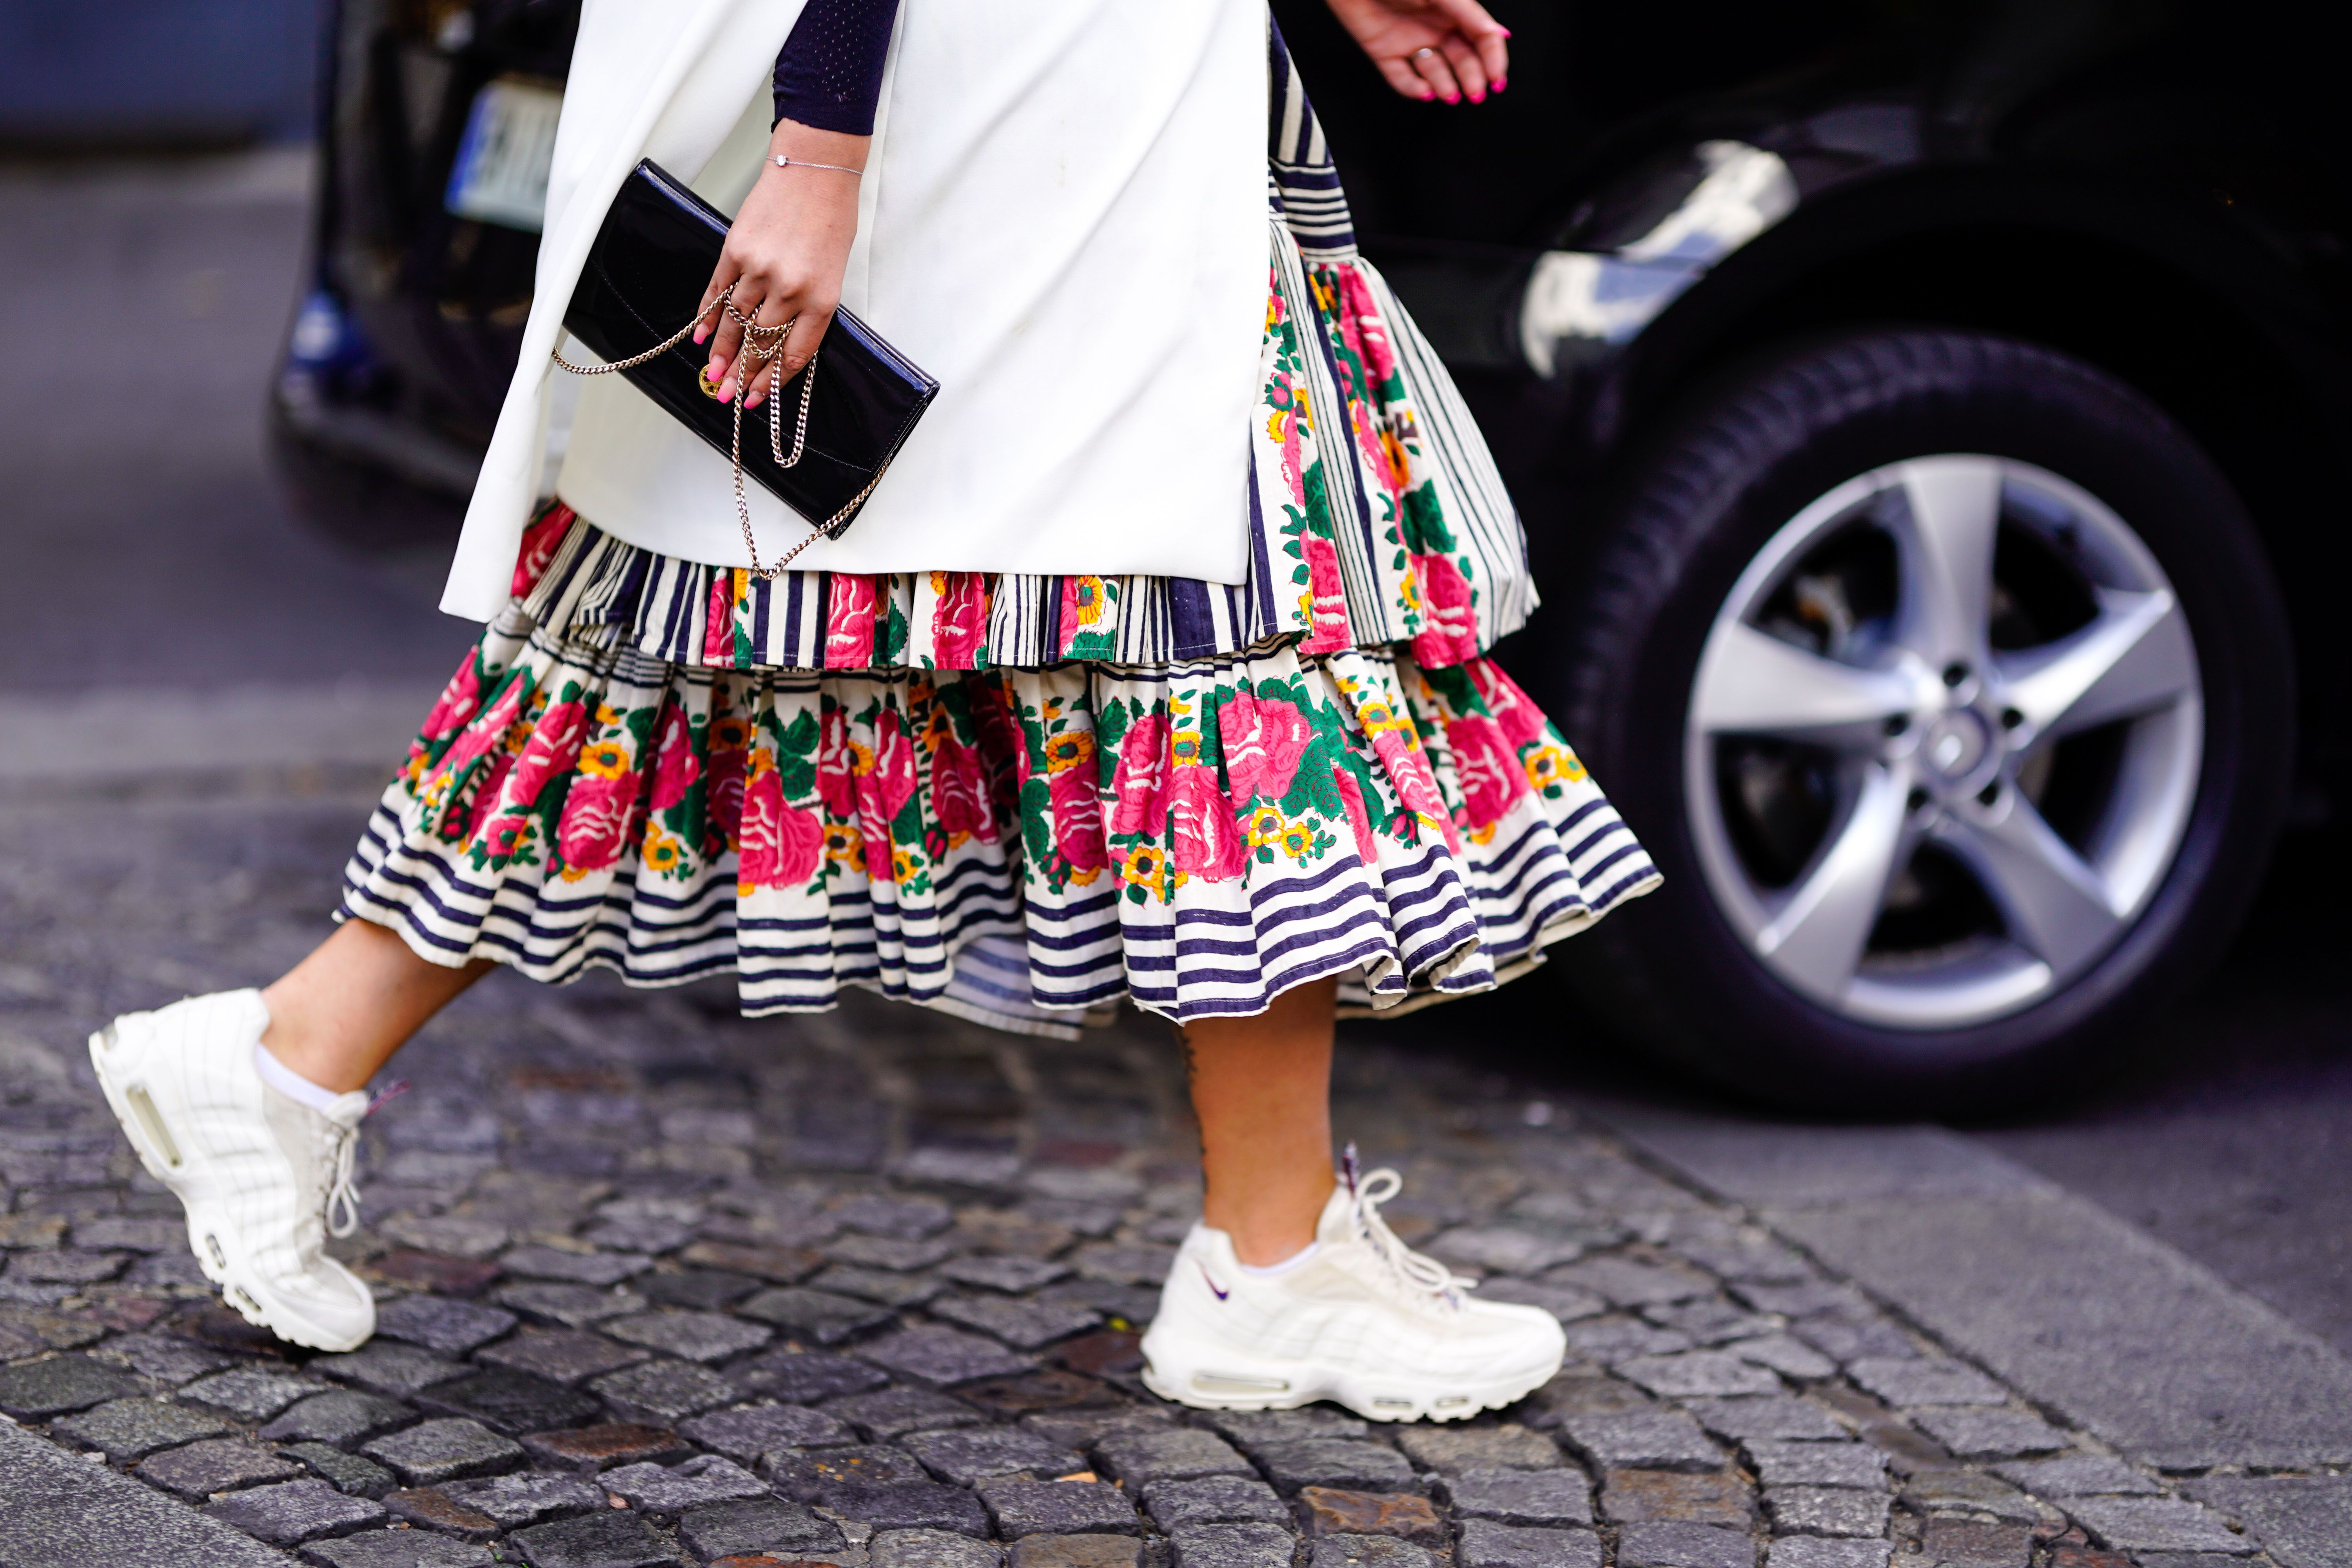 radar vägspärr Strömcell  14 Best White Sneakers for 2020 - Classic White Shoes That Go With ...